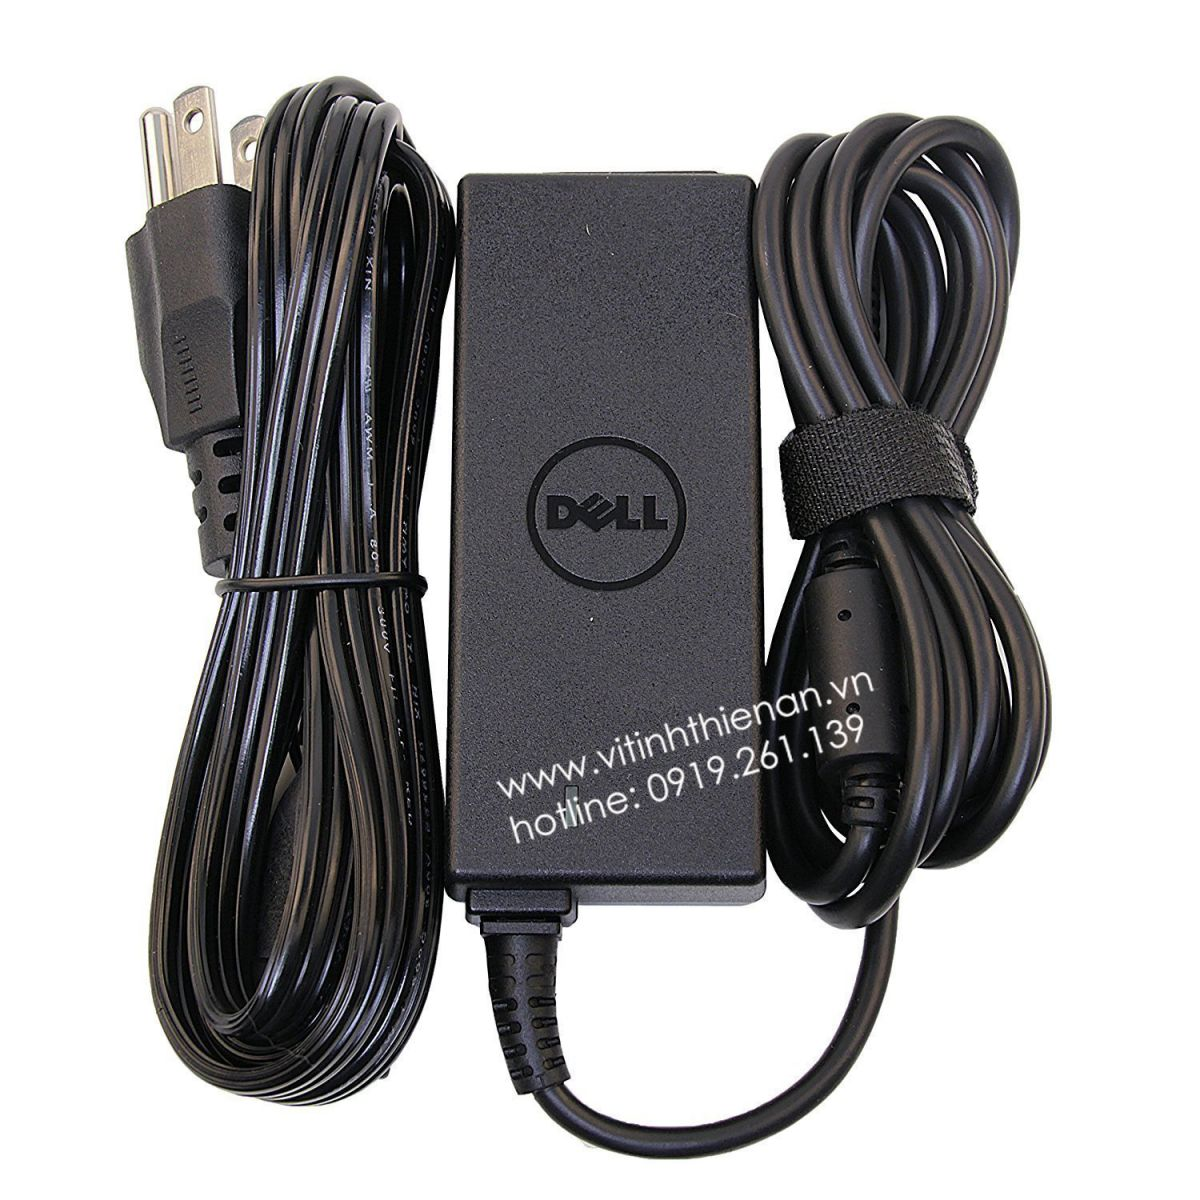 thay-sac-adapter-laptop-dell-gia-re-chinh-hang-hcm-1694 title=